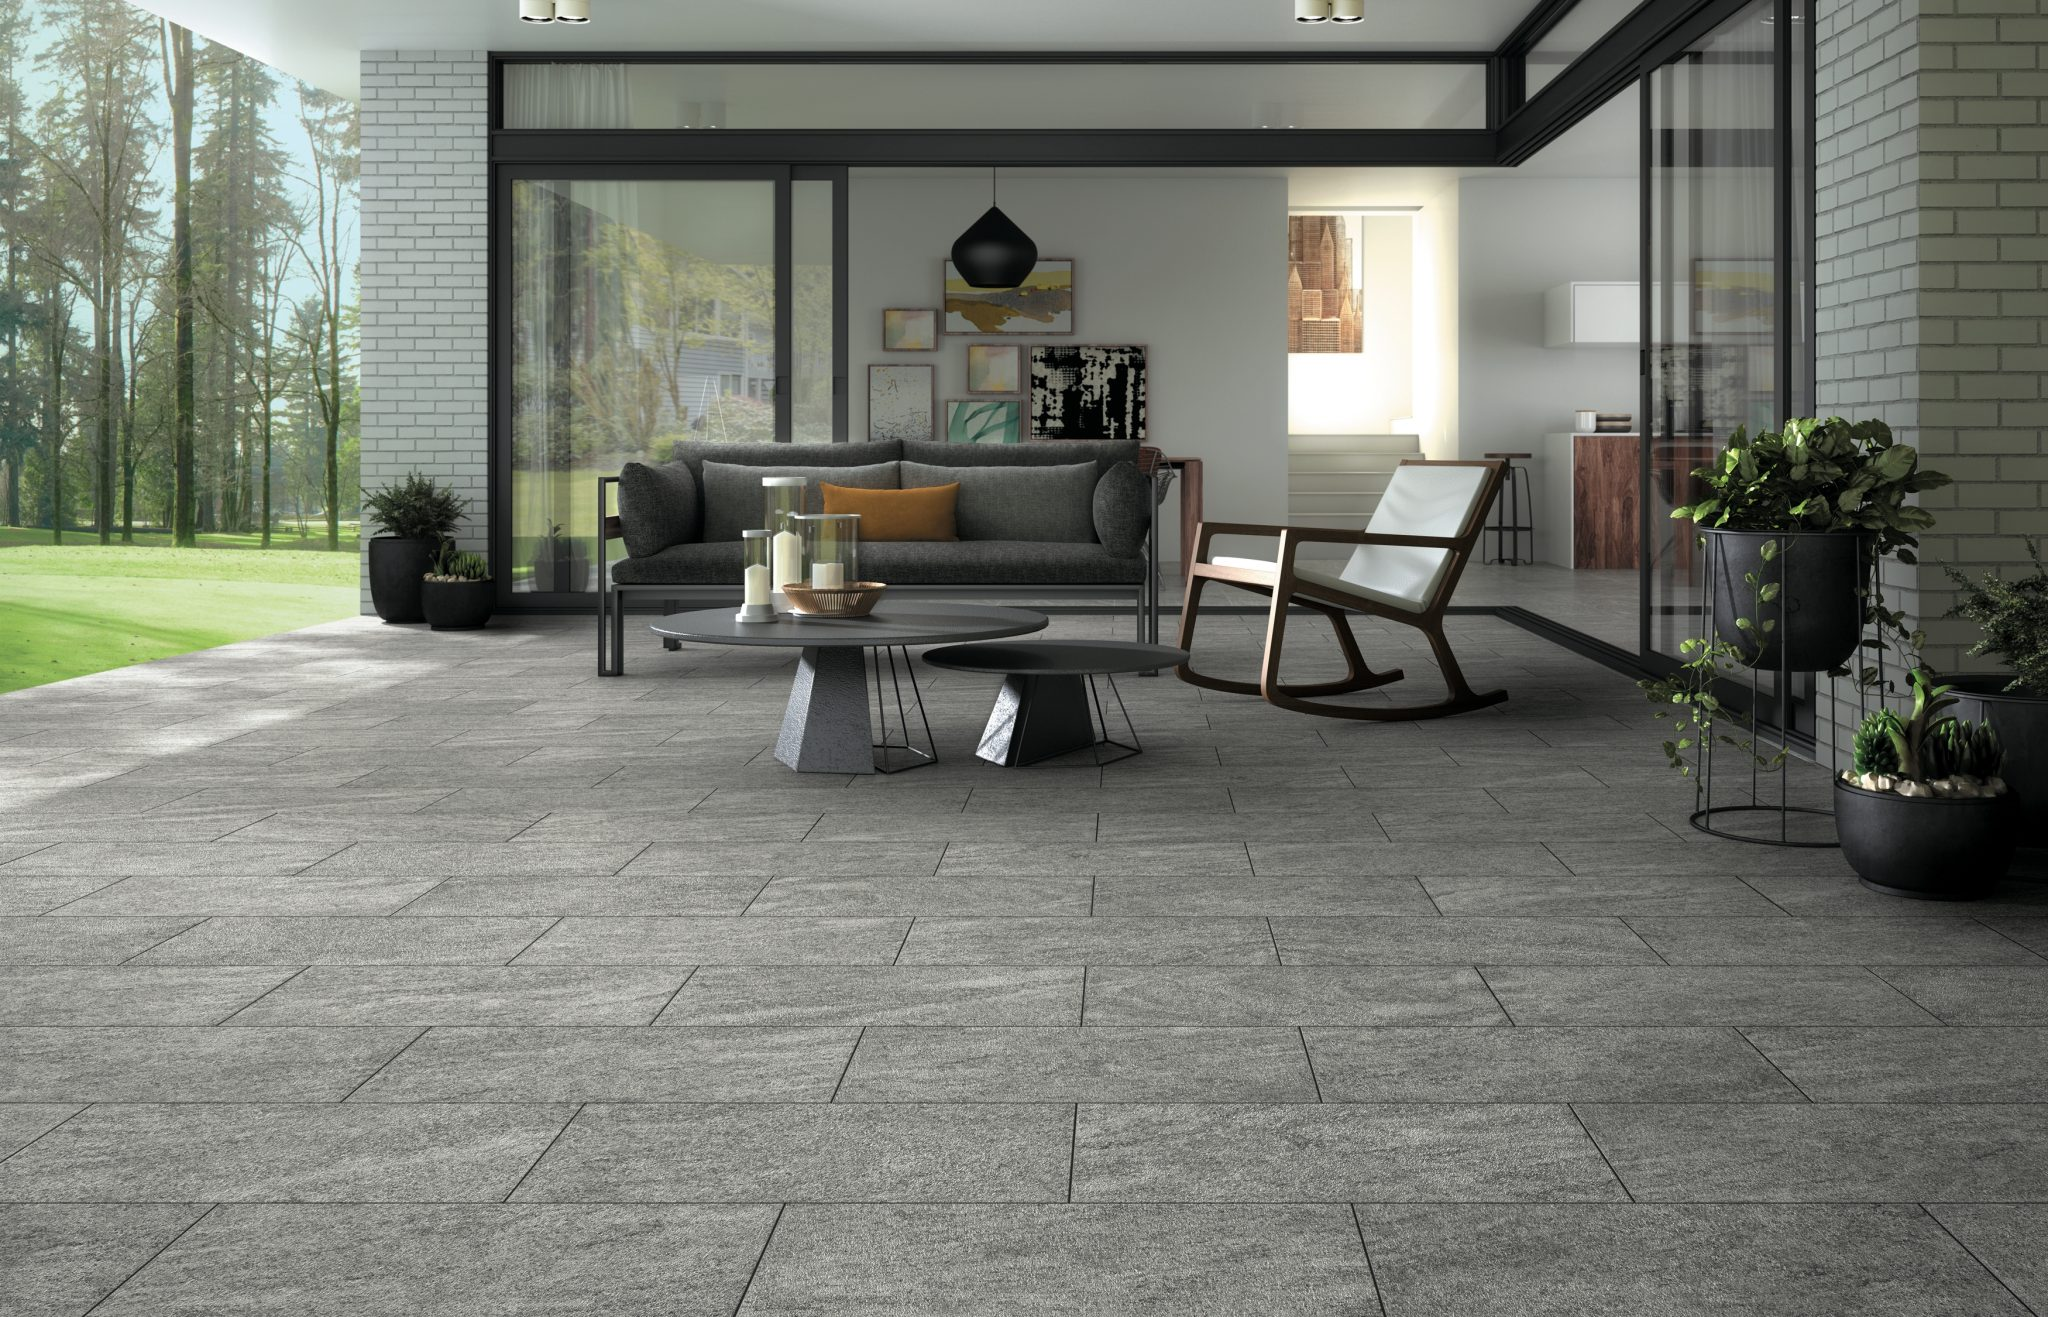 Outdoor Entertaining Area with clean patio pavers